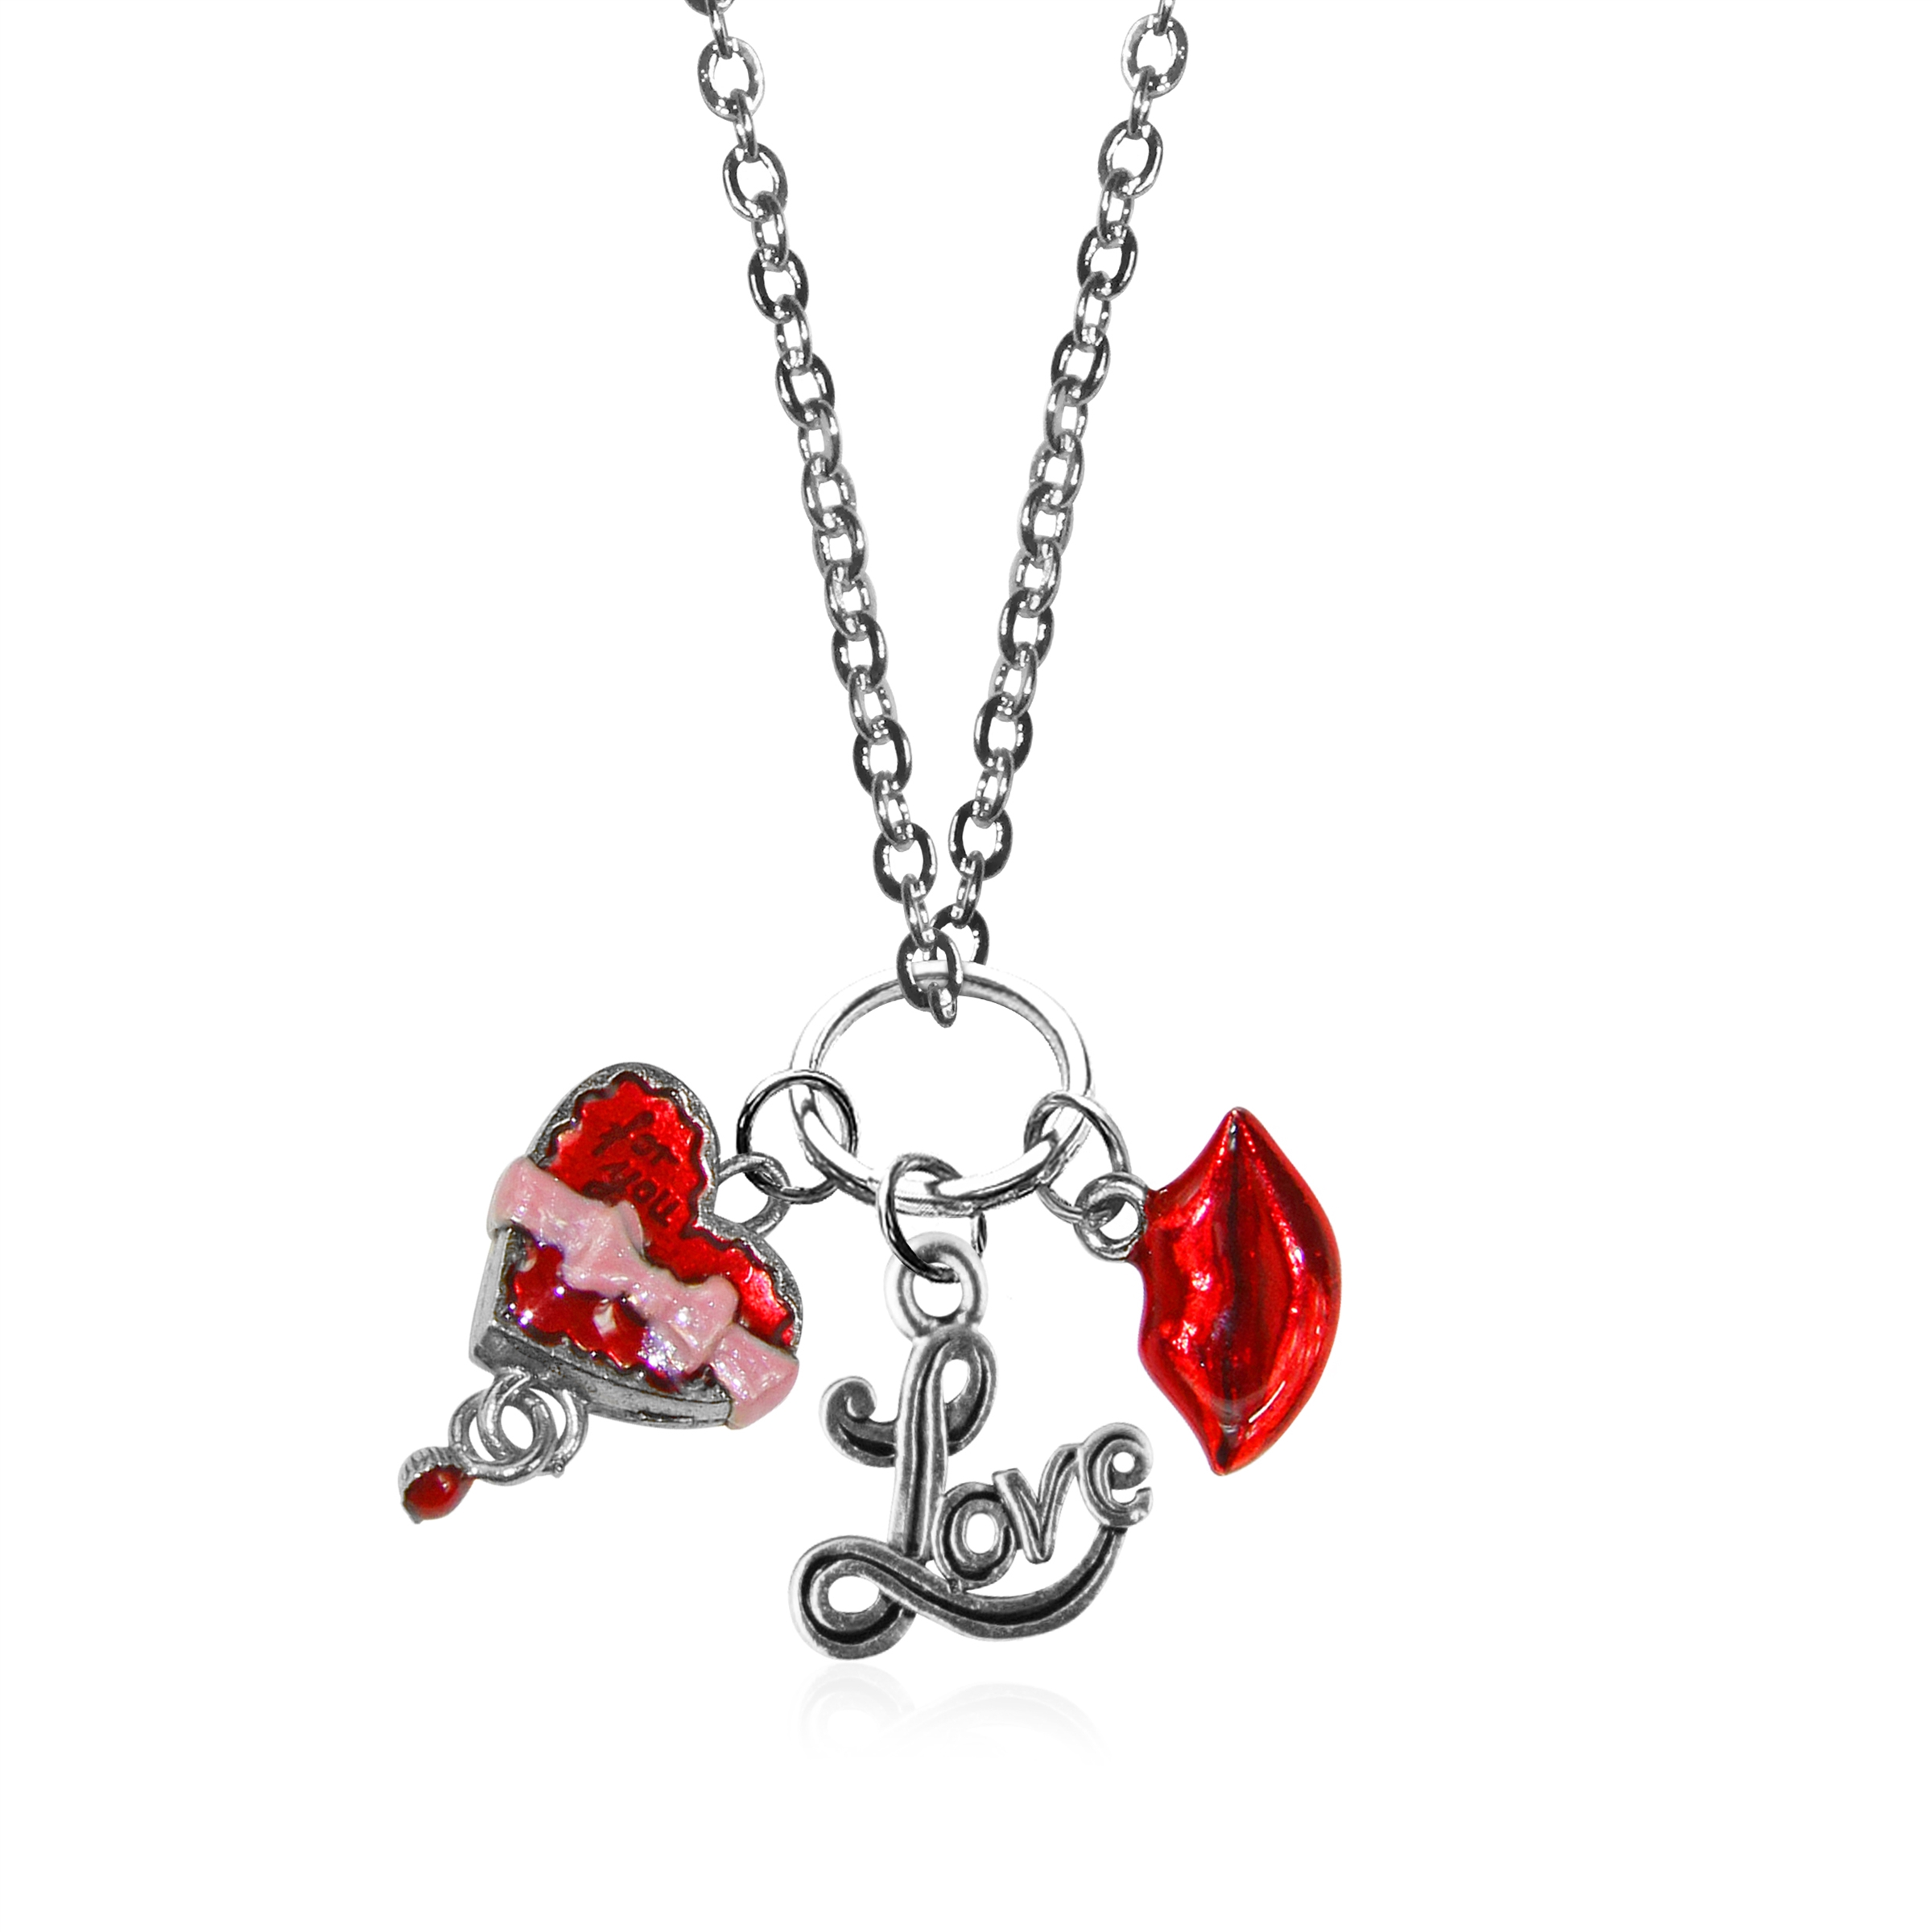 necklace silver charm in valentines htm day p nl